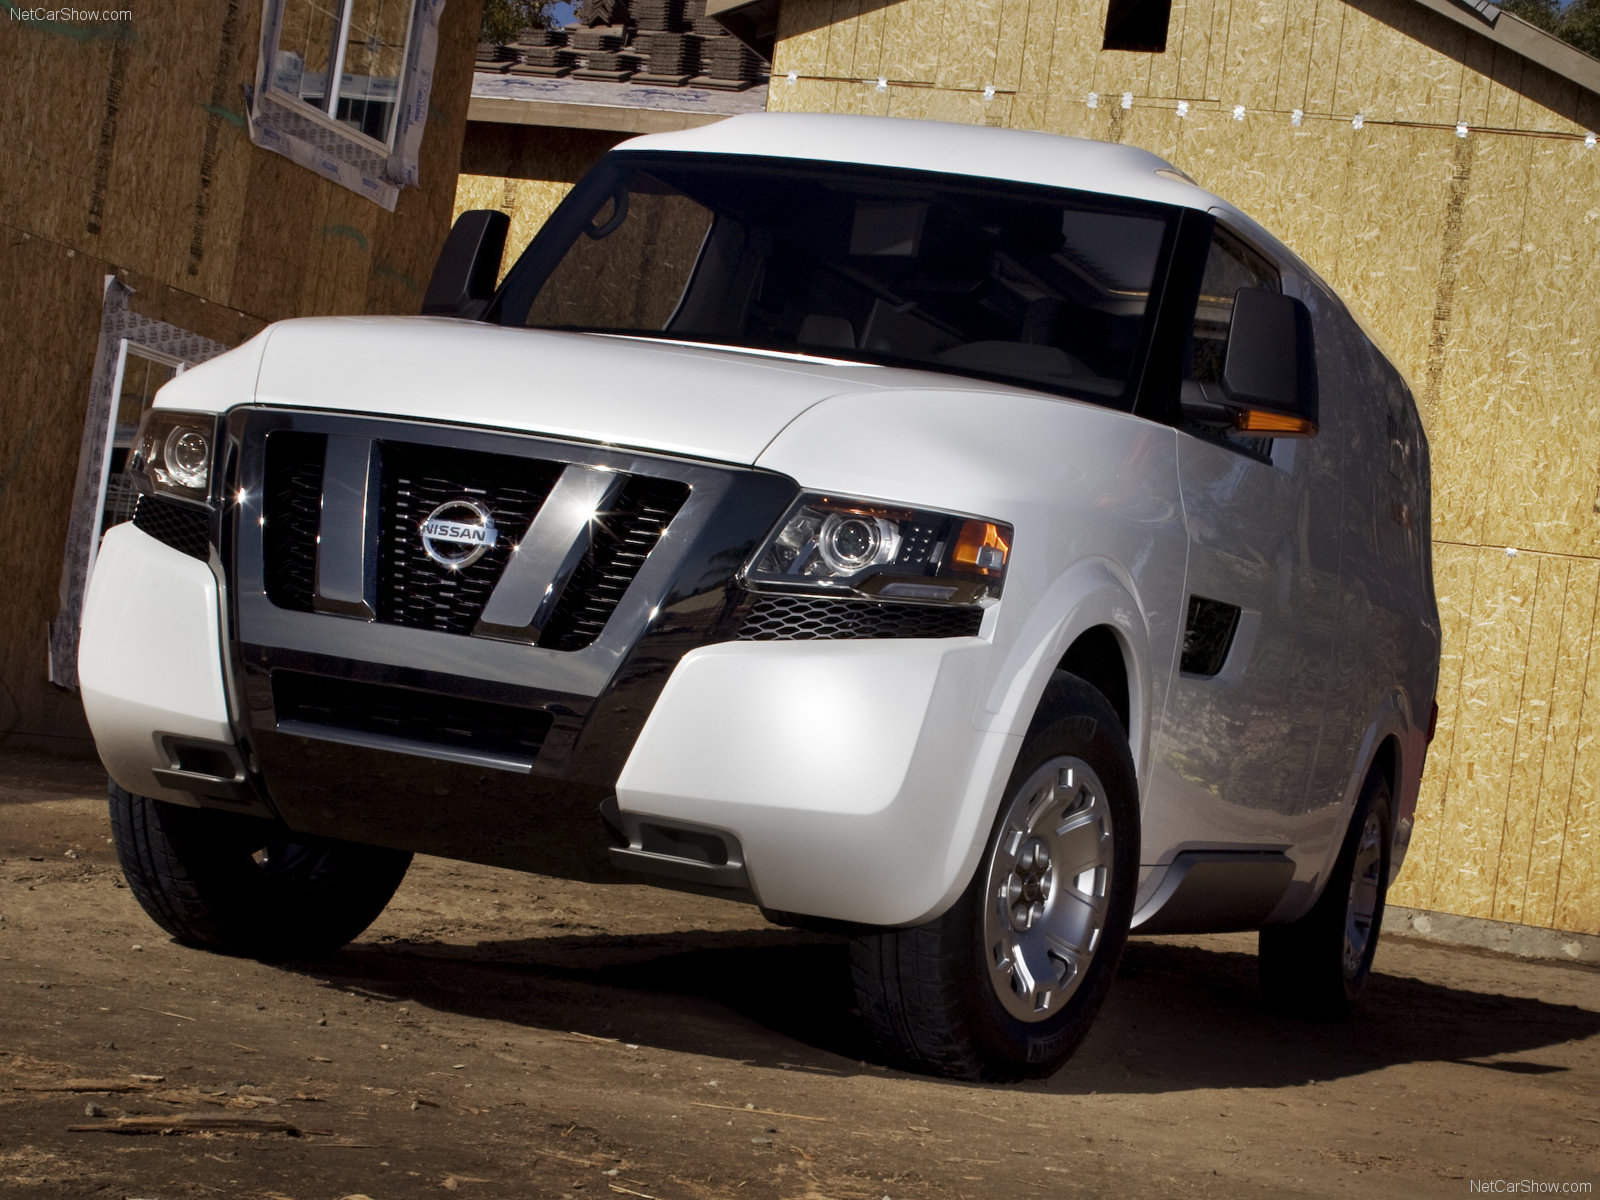 Nissan NV2500 Concept photo 59971